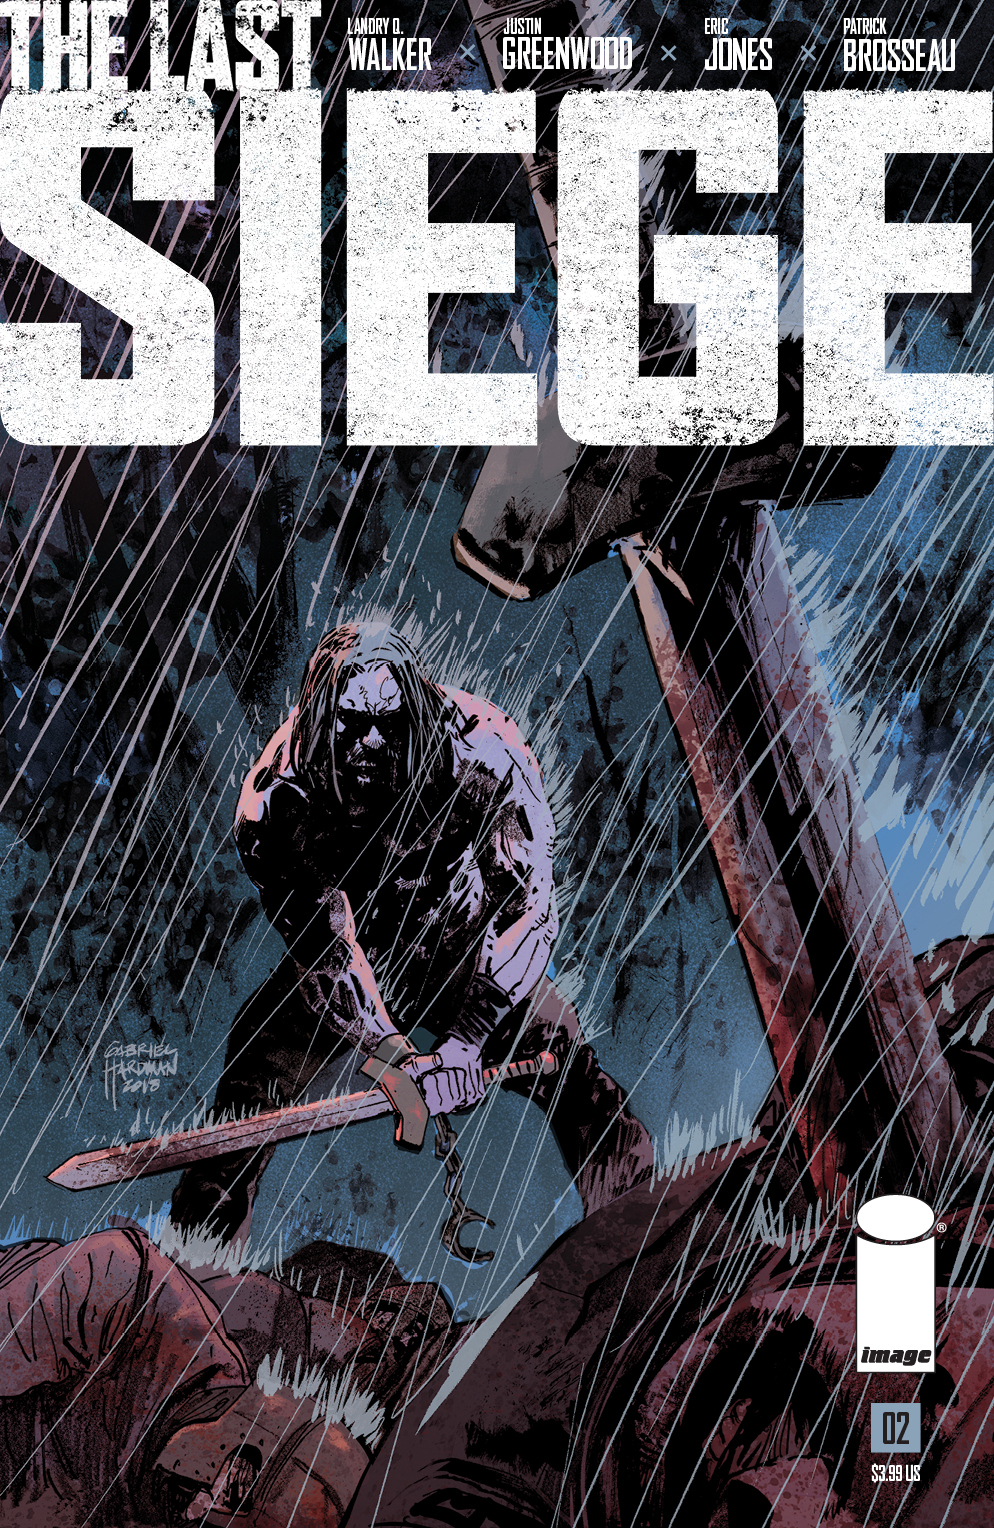 THE LAST SIEGE #2 variant cover by Gabriel Hardman and Brad Simpson